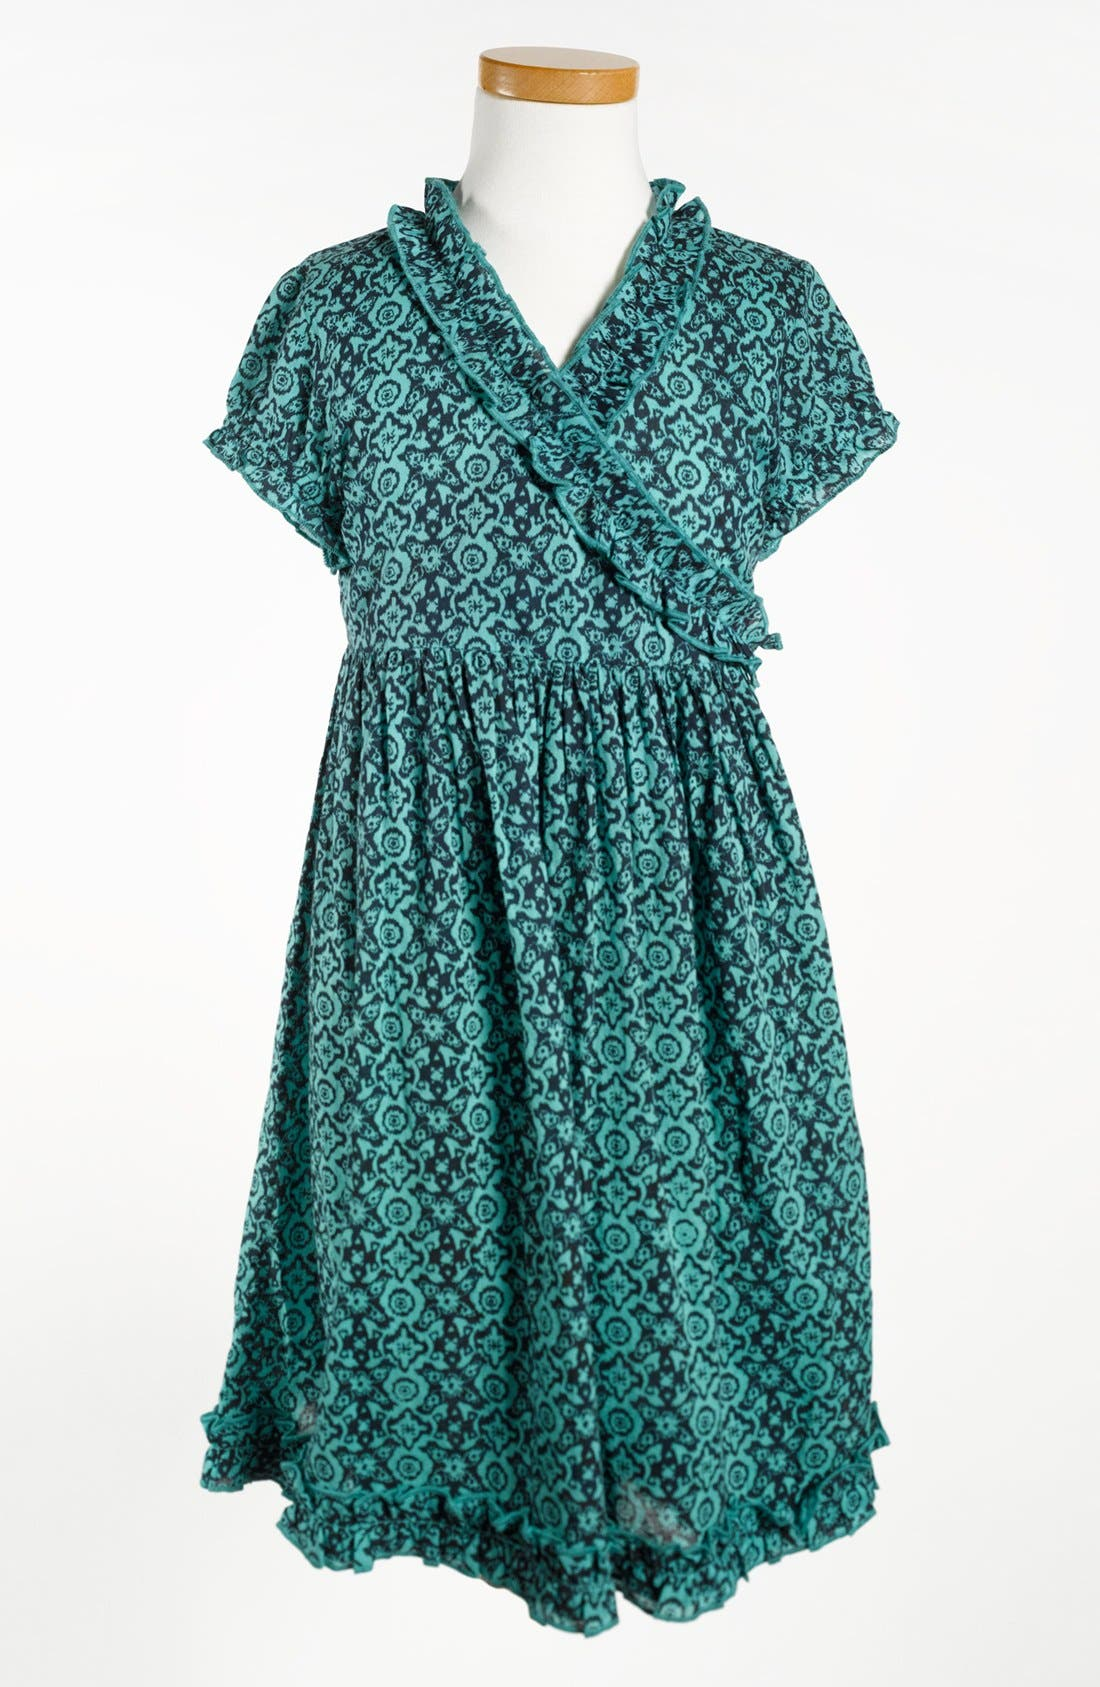 Main Image - Peek 'Cristina' Wrap Dress (Toddler Girls, Little Girls & Big Girls)